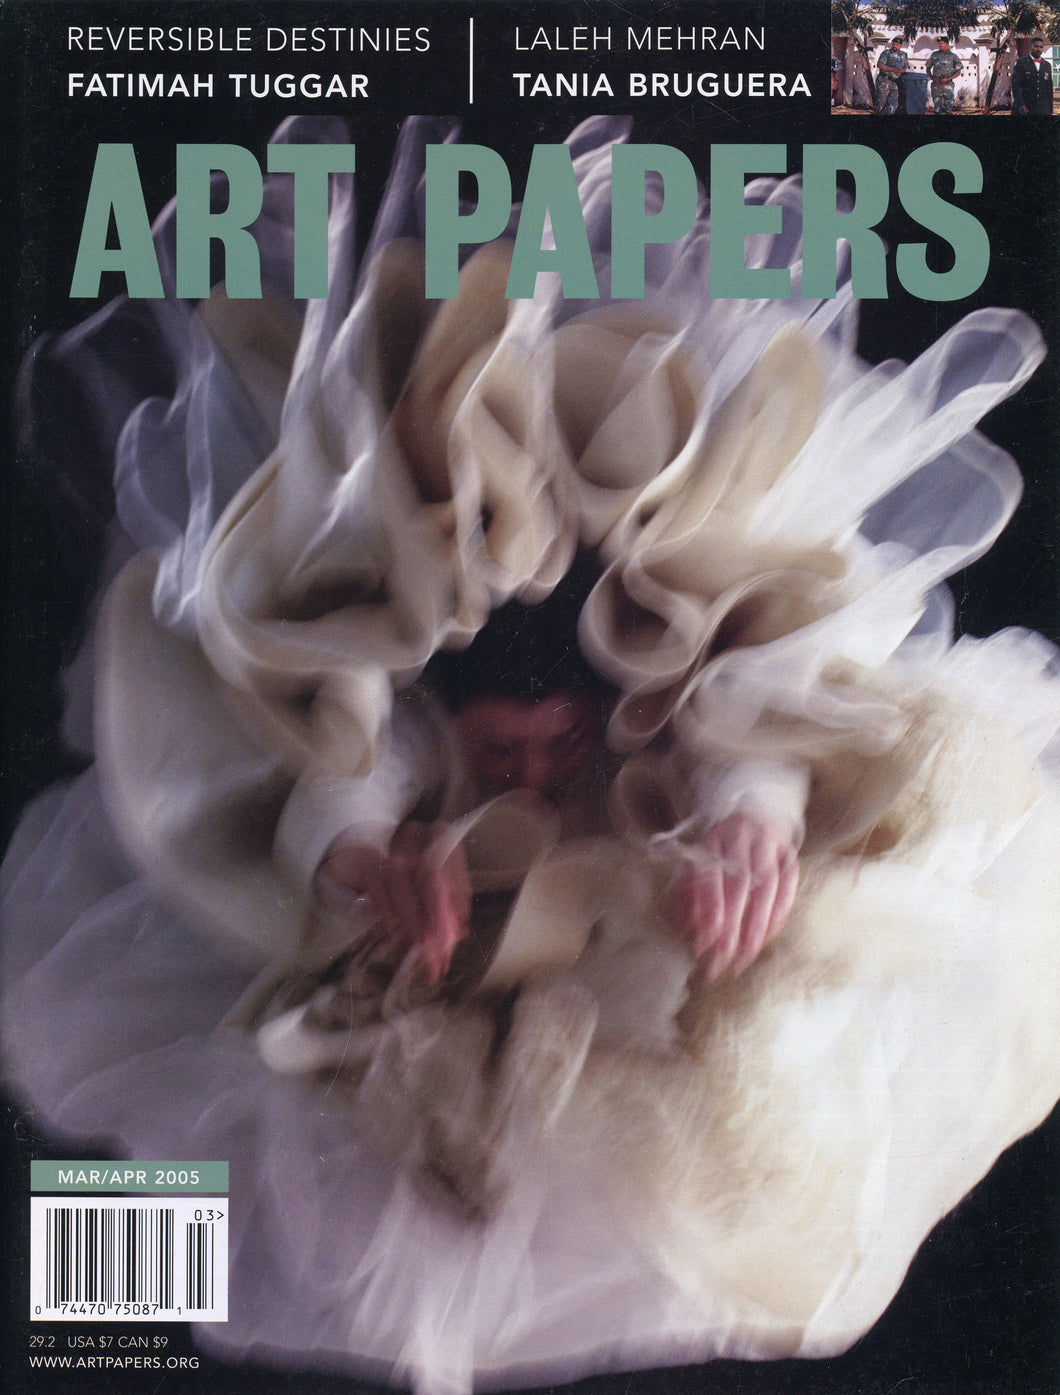 ART PAPERS 29.02 - Mar/Apr 2005